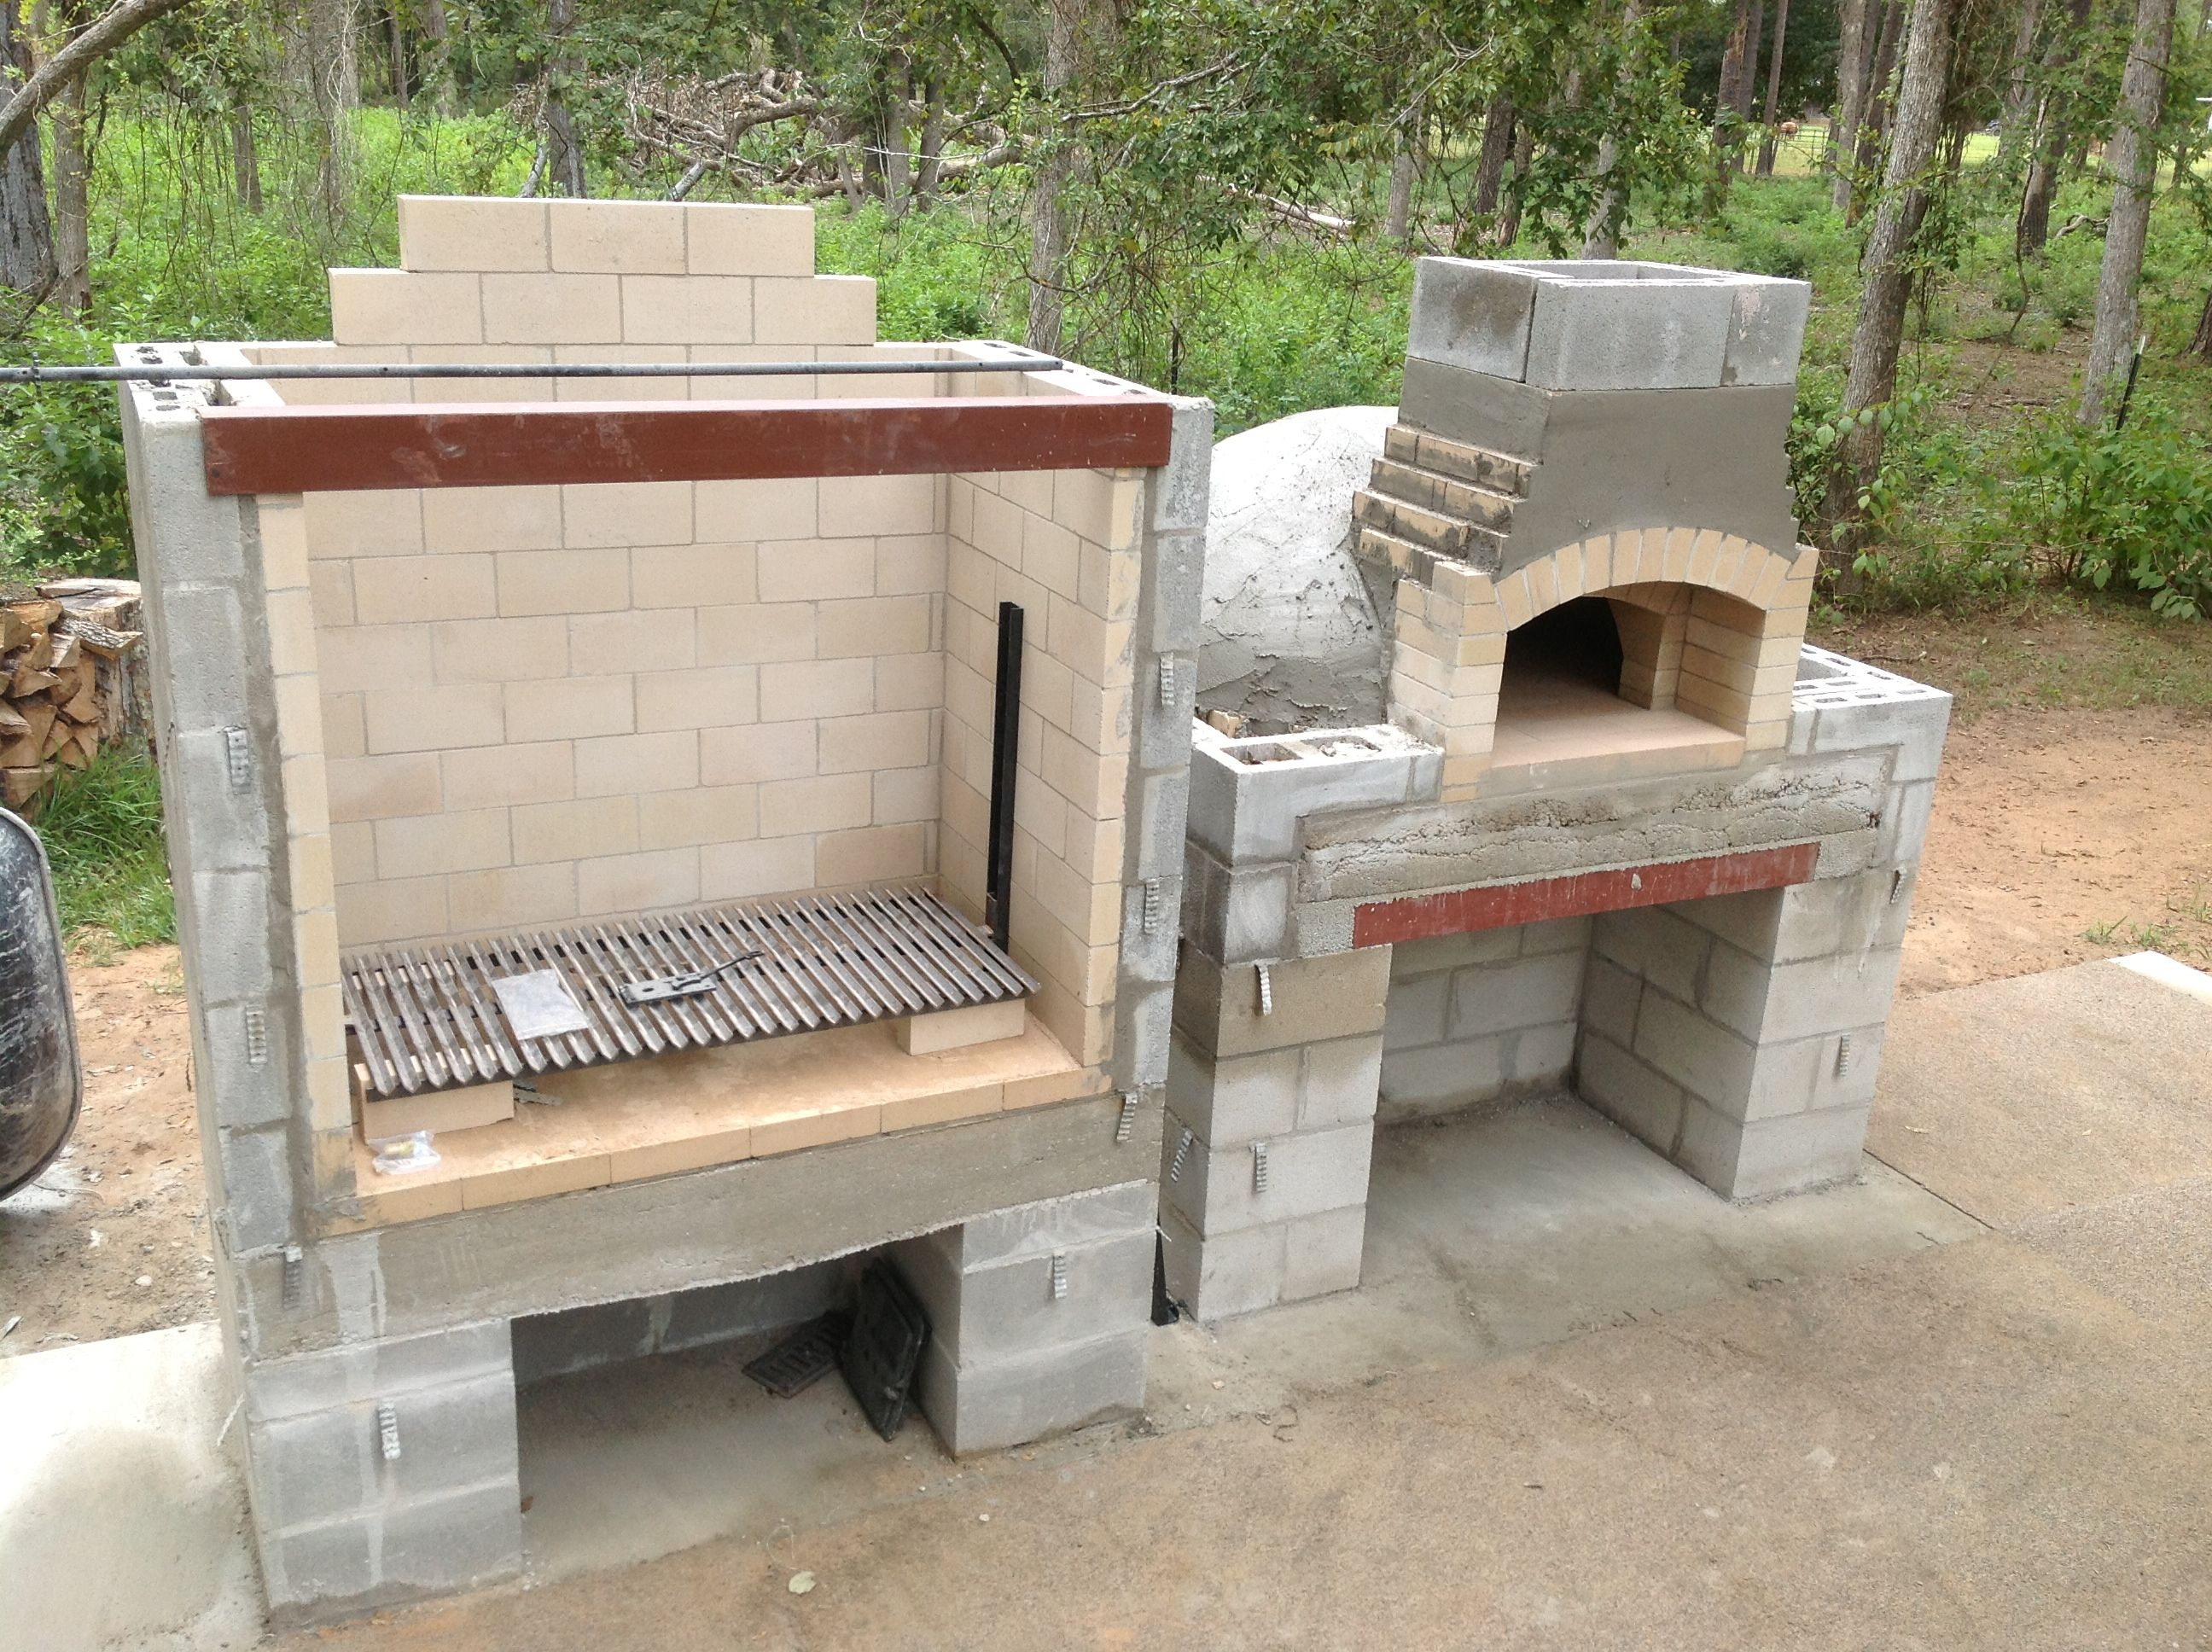 Argentinian Grill Wood Fired Duo Fire Breathing Works Of Art Argentinian Grill Oven Argentinian Grill Argentine Grill Pizza Oven Outdoor Kitchen